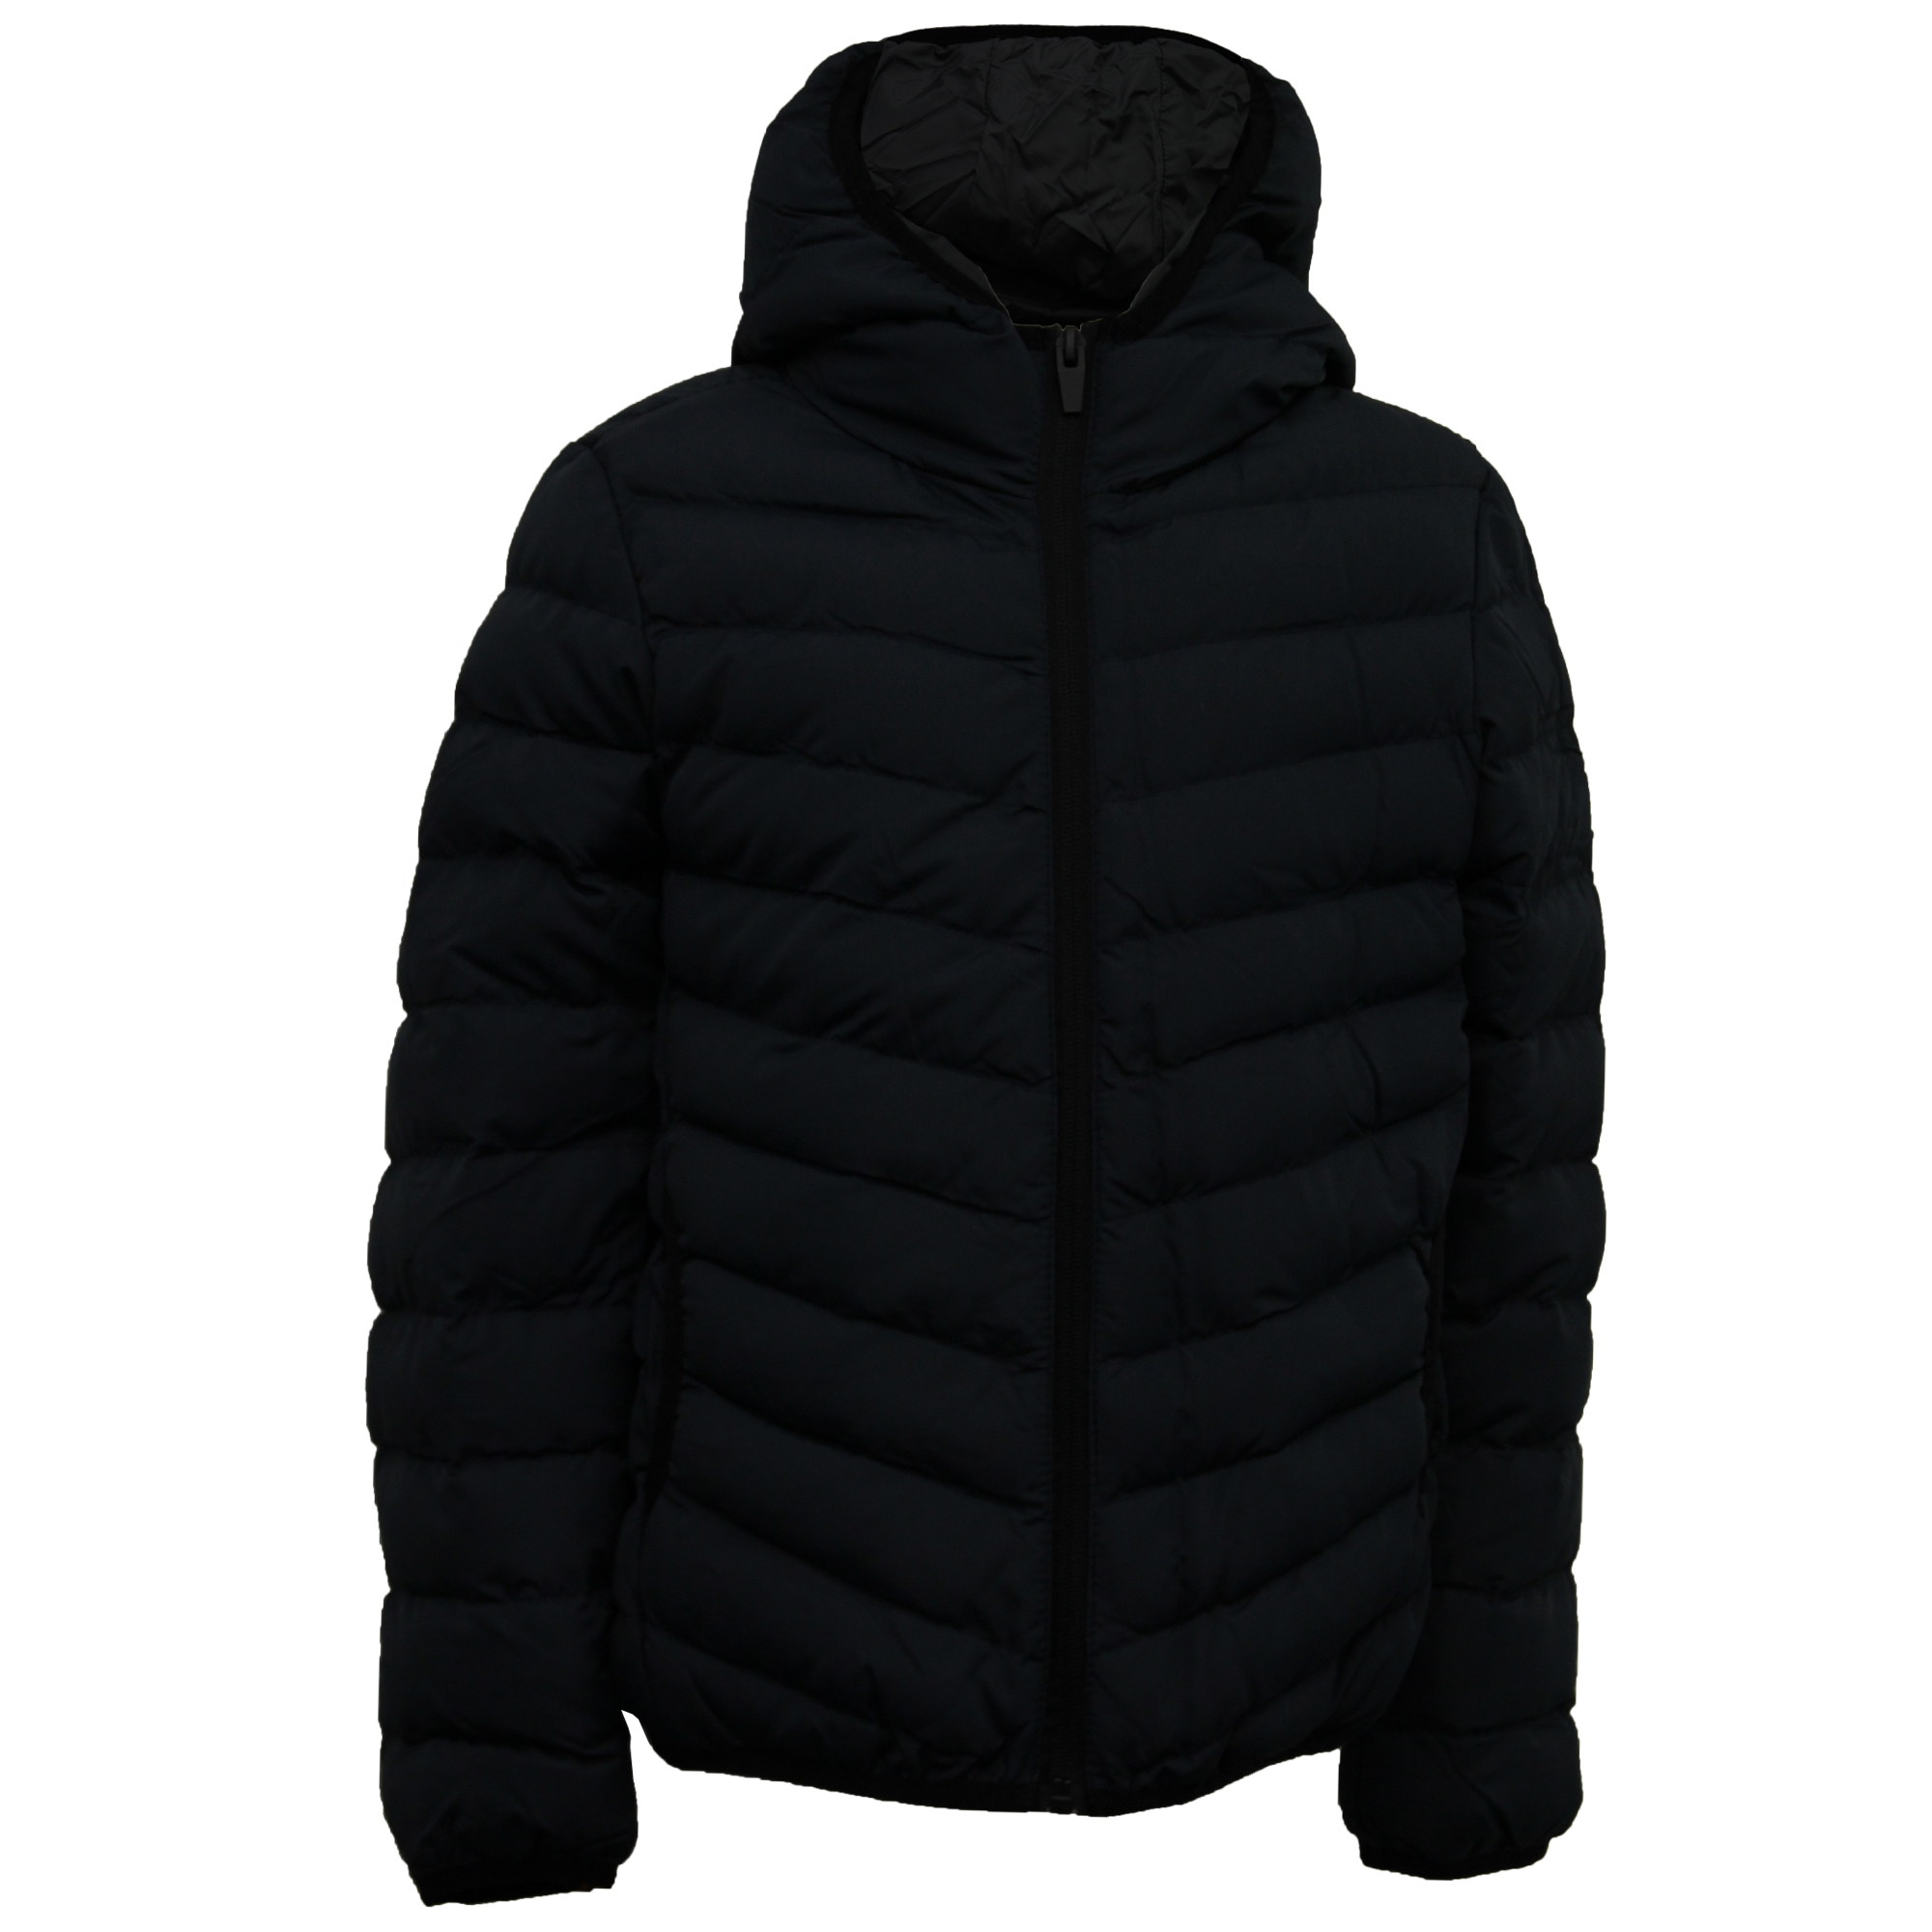 Keep boys warm, dry and looking stylish during the cold winter months with our extensive range of boys padded coats. Available in a variety of designs from some of your favourite designers, our selection of practical boys down padded coats will ensure boys are kept cosy.